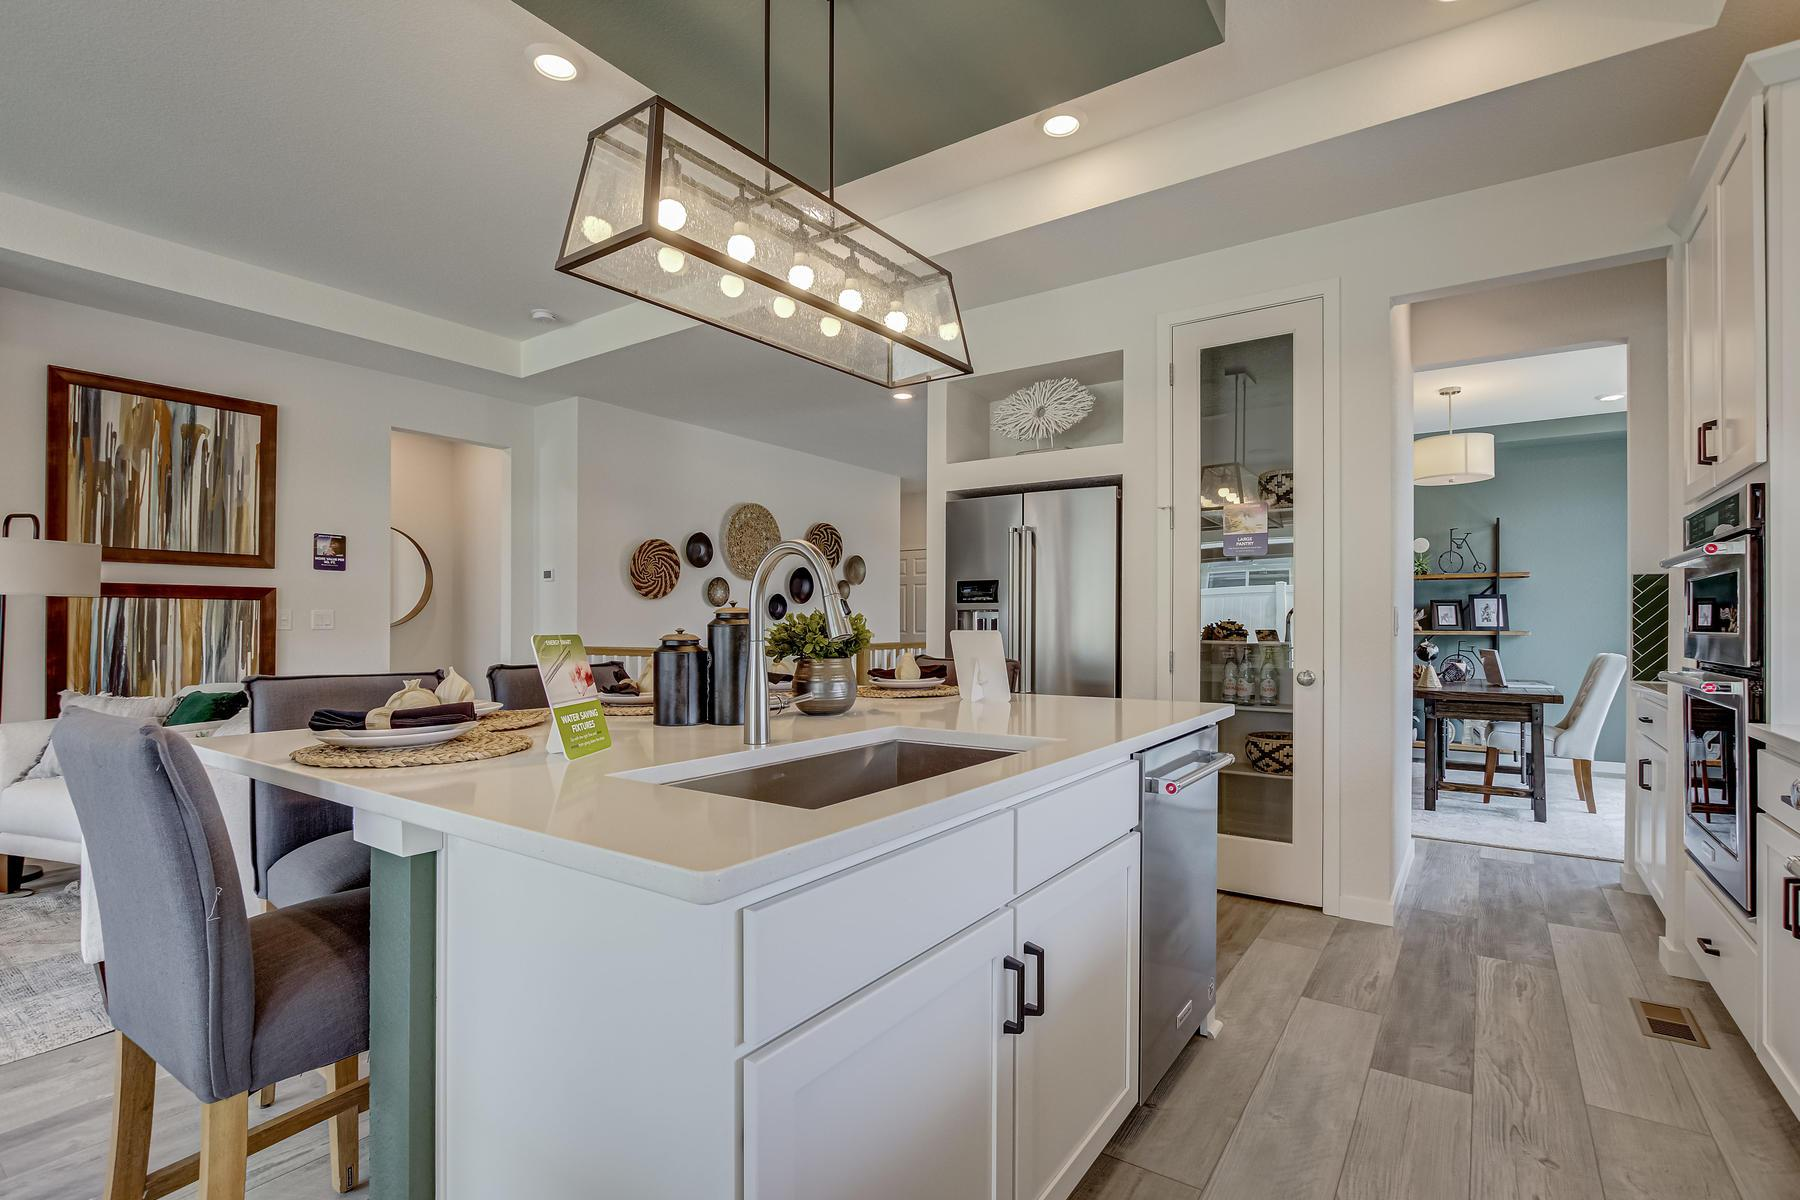 Kitchen featured in the Crestone By Oakwood Homes in Fort Collins-Loveland, CO